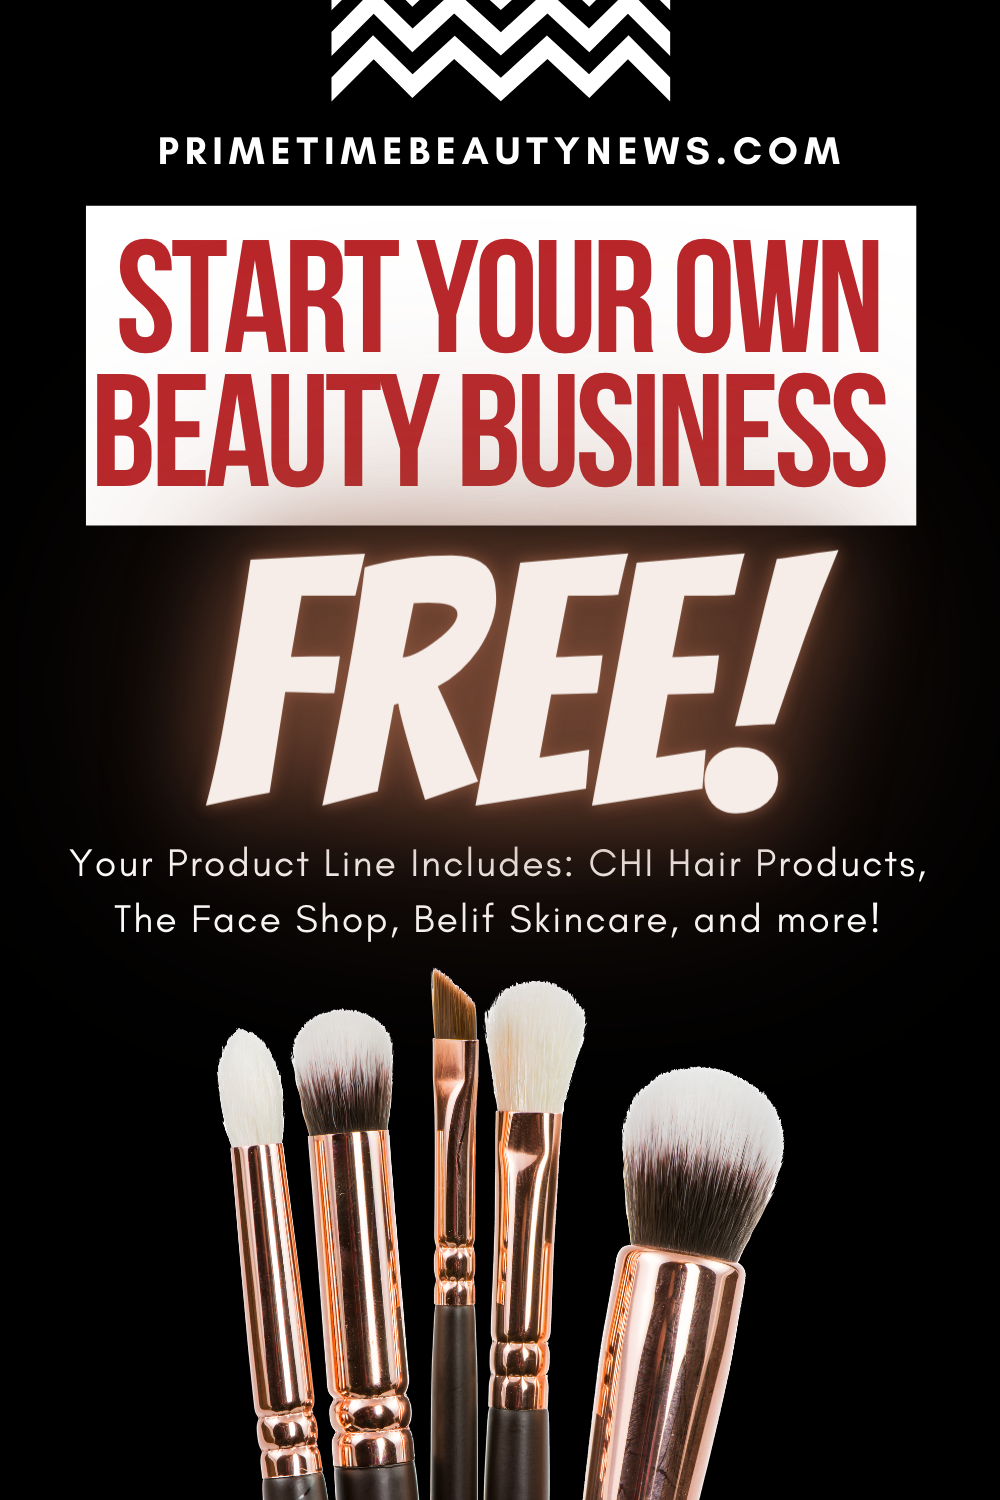 Work From Home With Your Beauty Business In 2020 Sell Avon Online Beauty Business Selling Avon